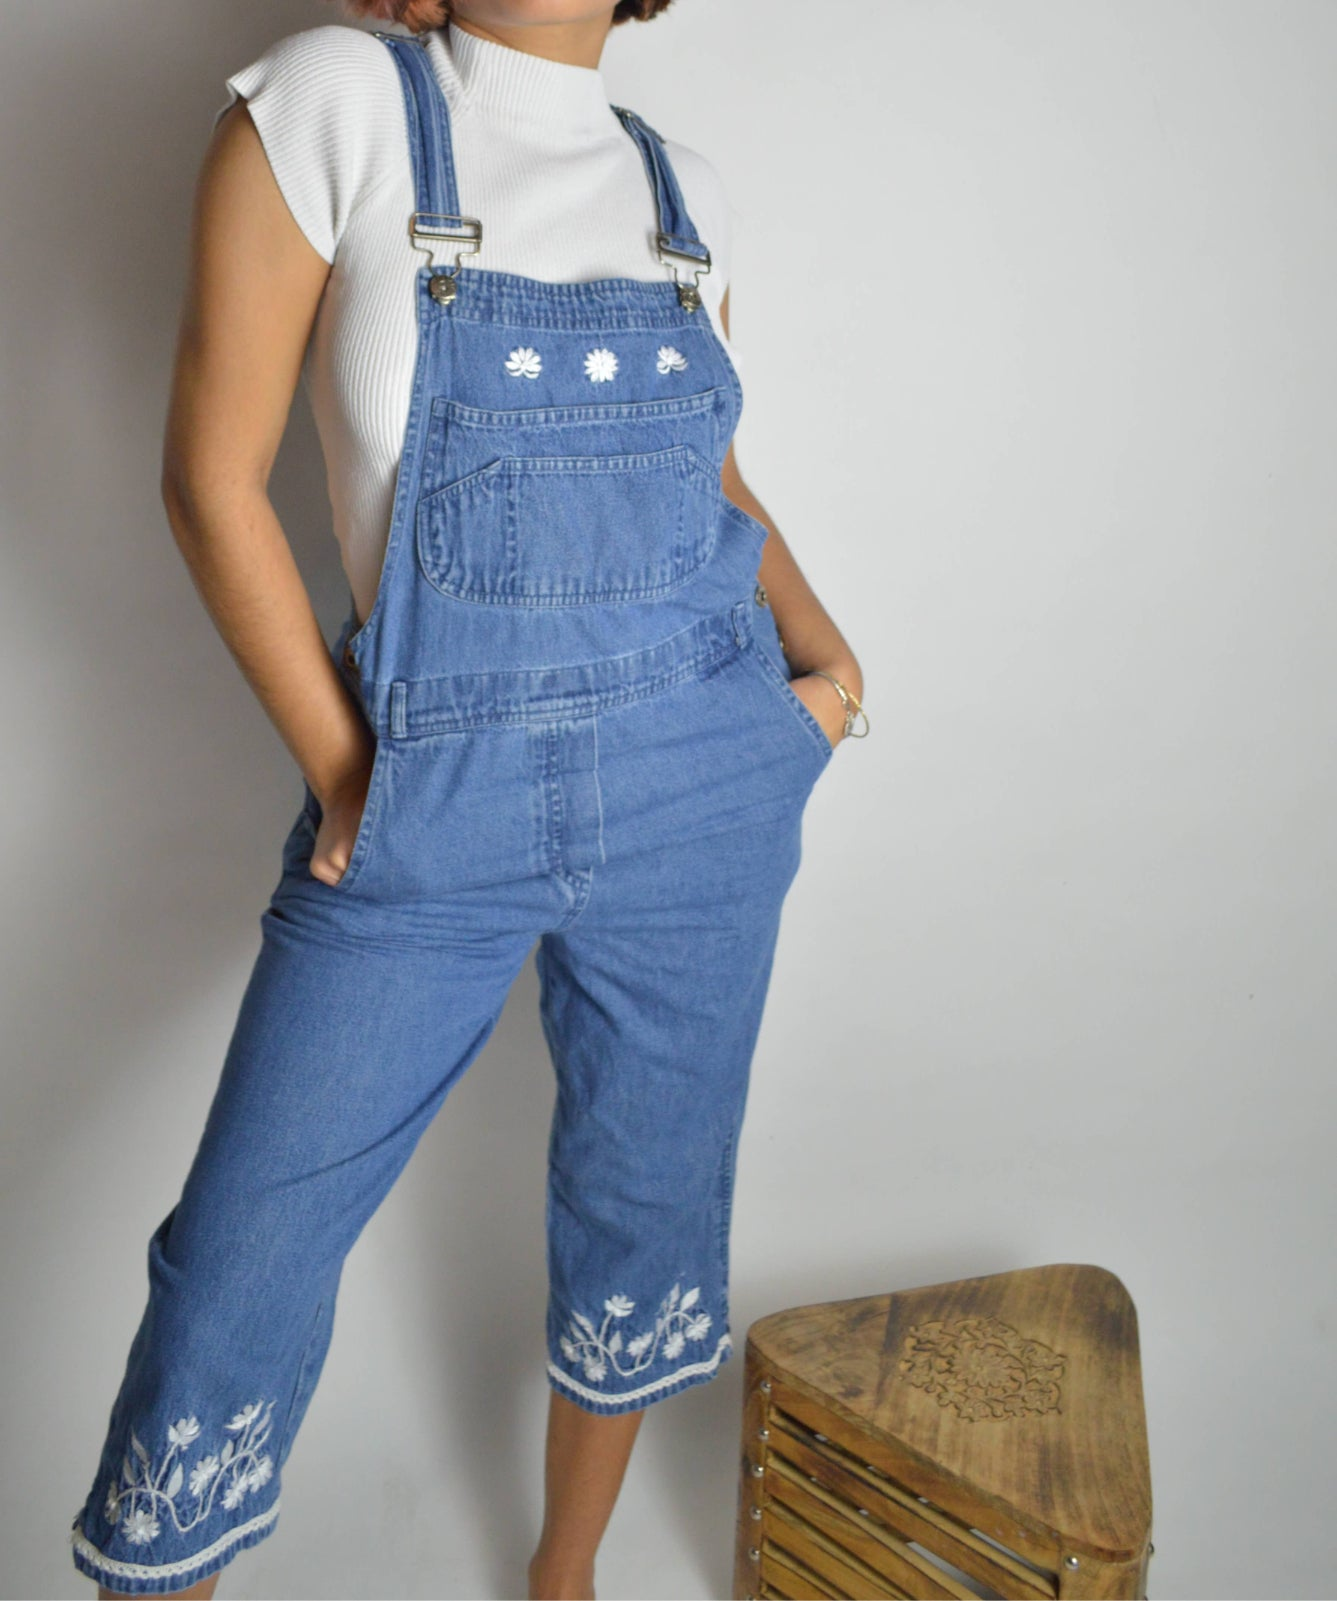 Vintage Floral Embroidered Overalls